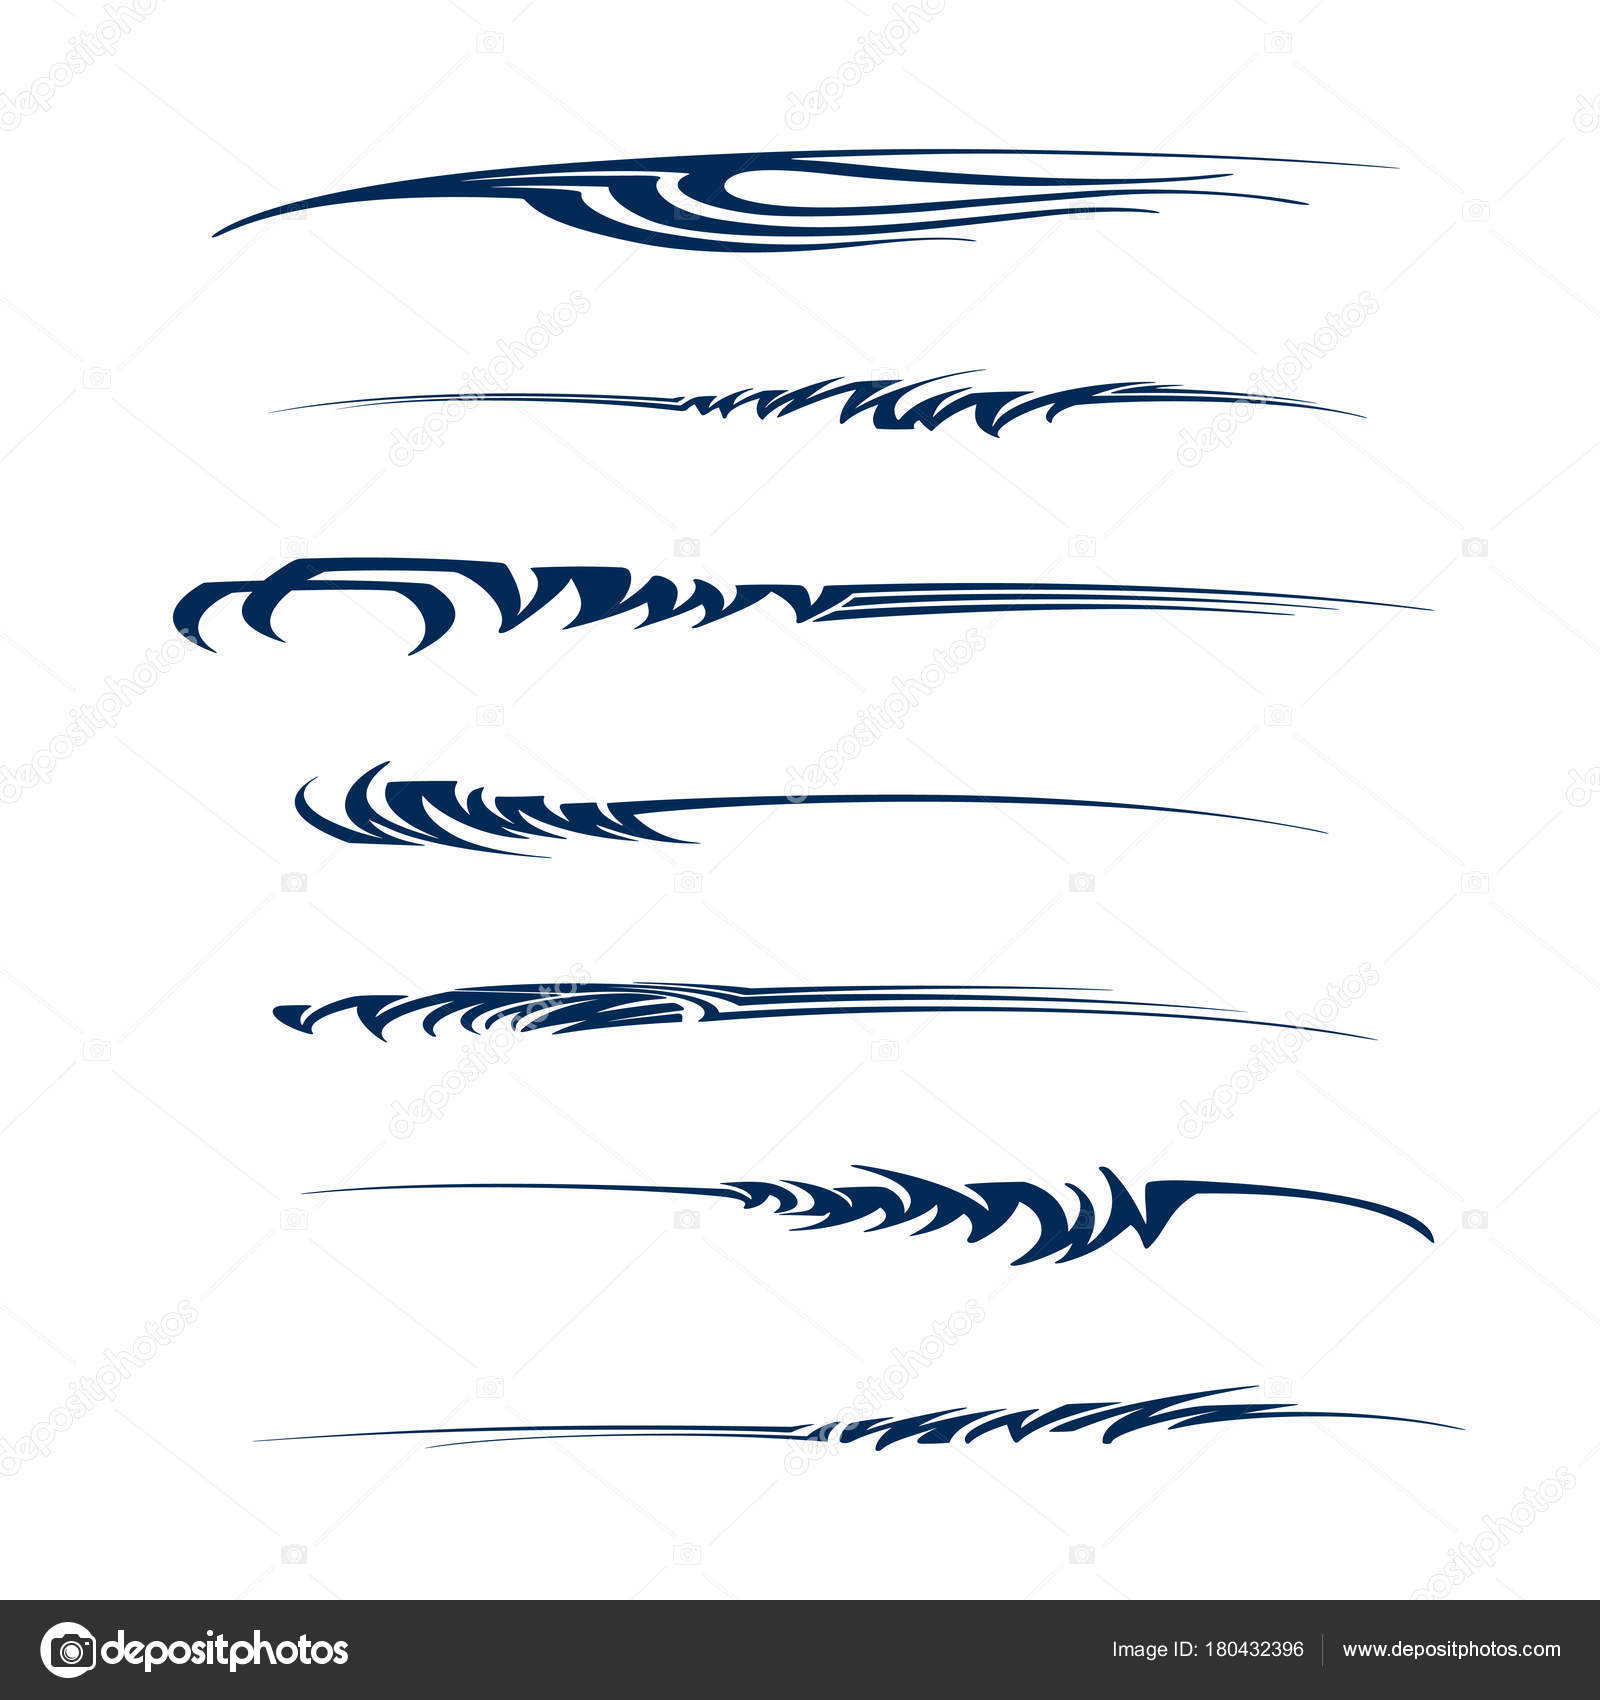 Car motorcycle racing vehicle graphics vinyls decals fully editable vector vector by oriu007